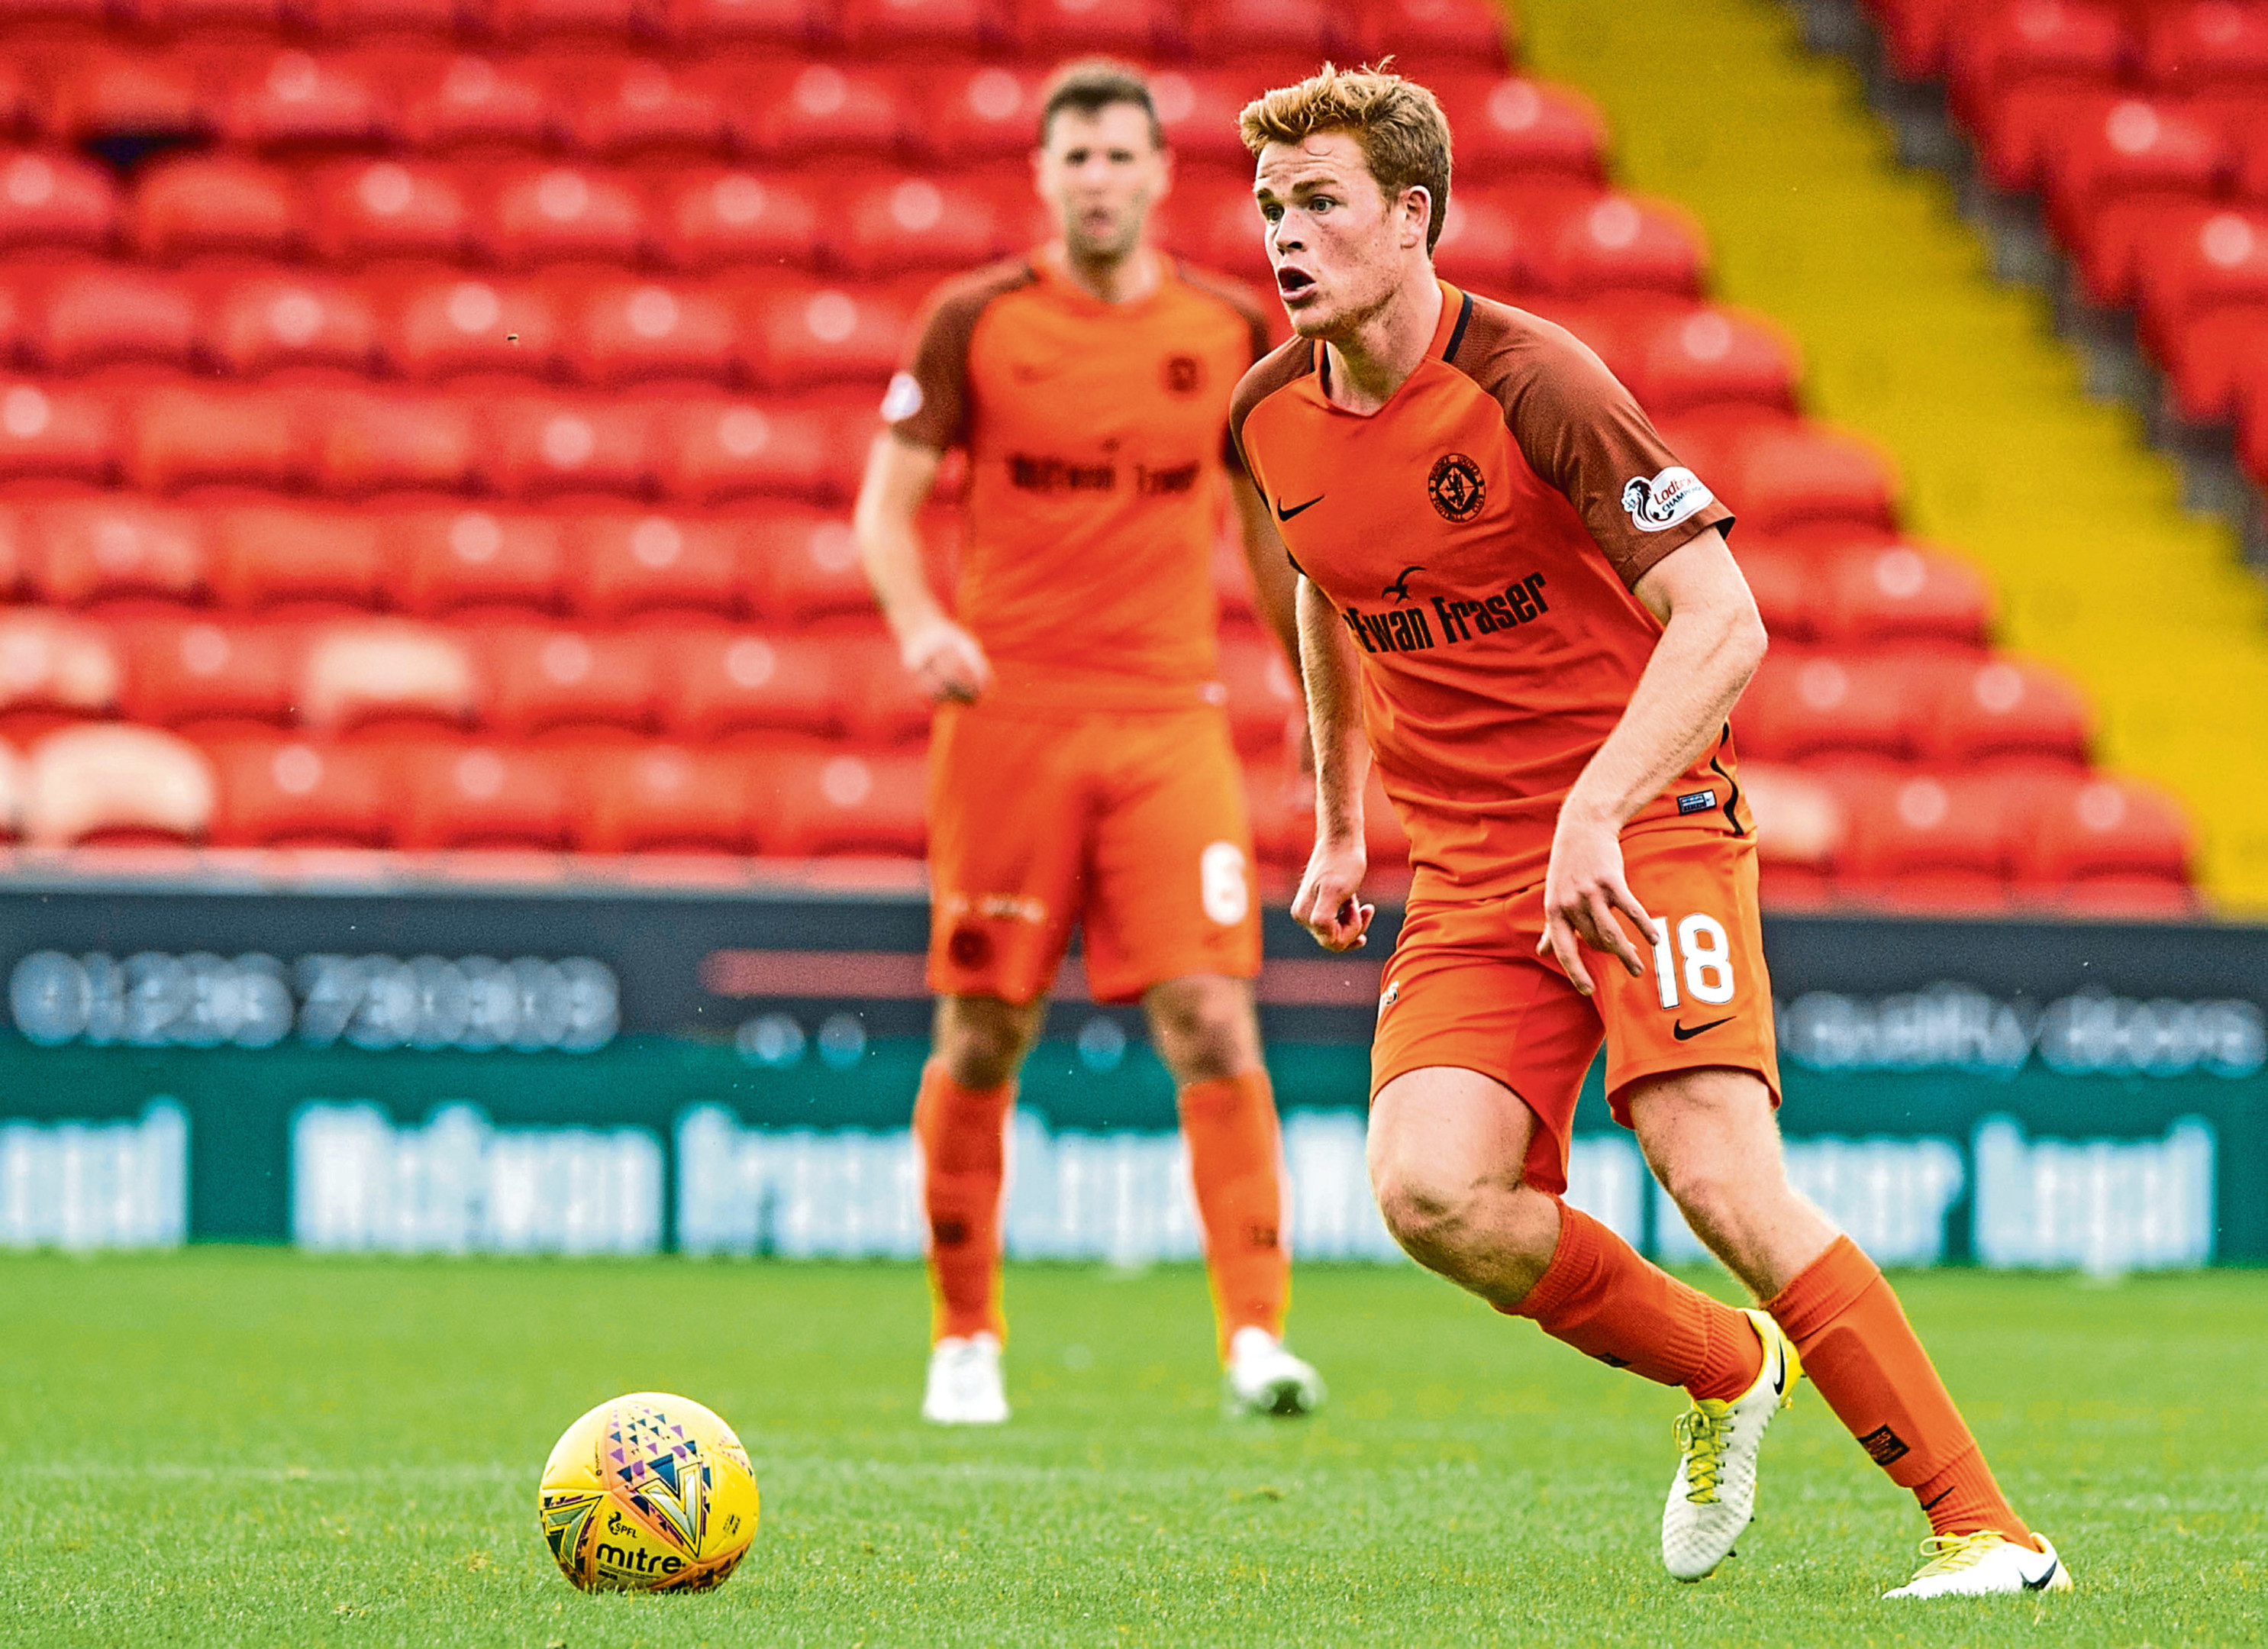 Dundee United youngster Scott Allardice will be looking to cement himself in a new position at centre-back next season.